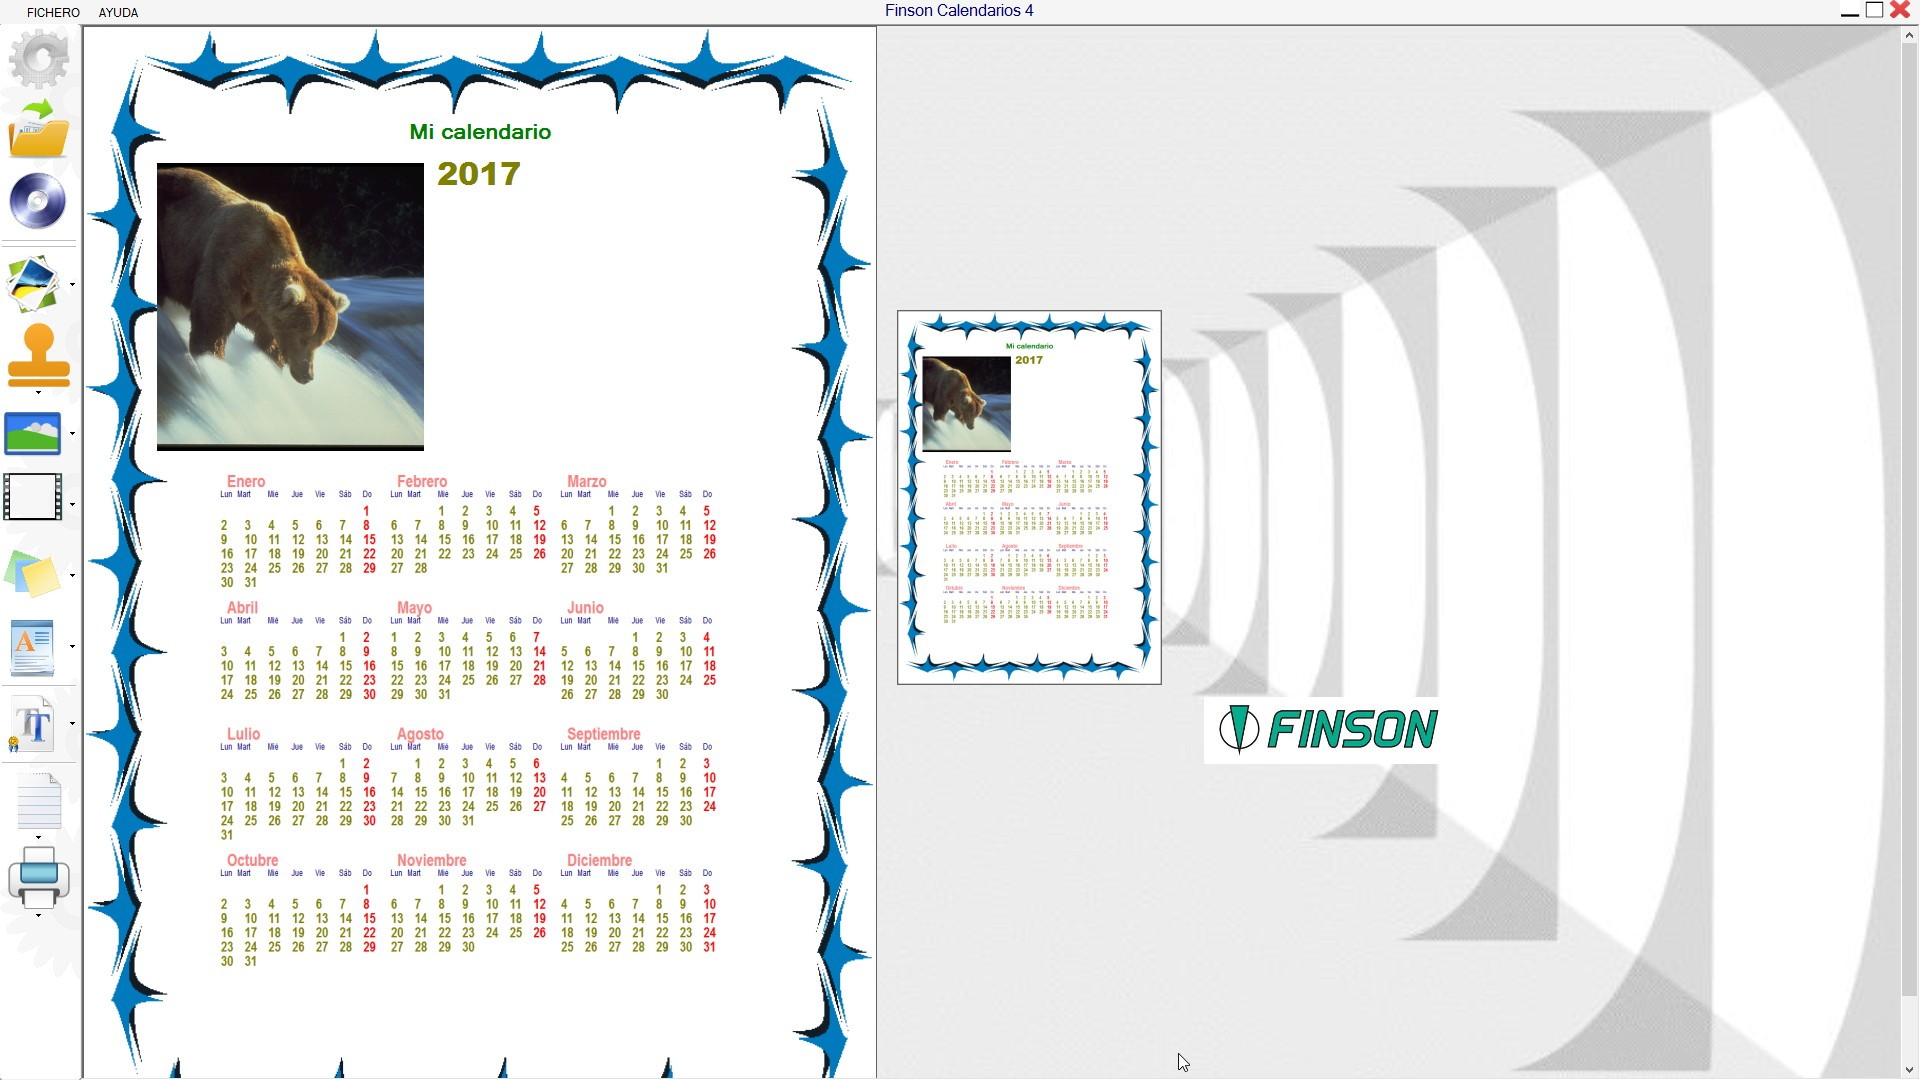 FINSON CALENDARIOS 4 PARA WINDOWS - schermata 2